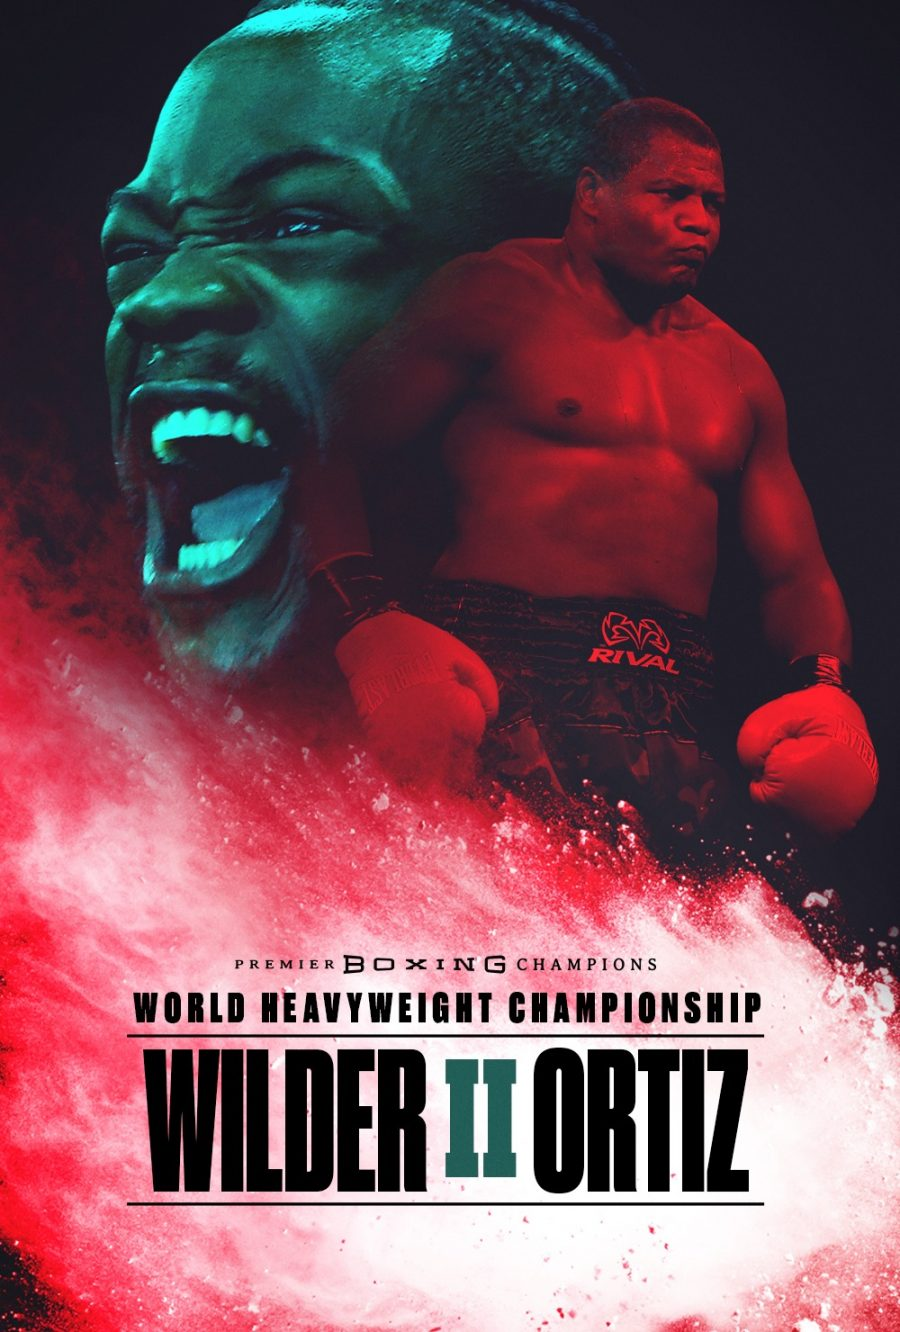 SATURDAY, NOVEMBER 23RD – WILDER VS ORTIZ II AT MULLEN'S BAR & GRILL NORRIDGE